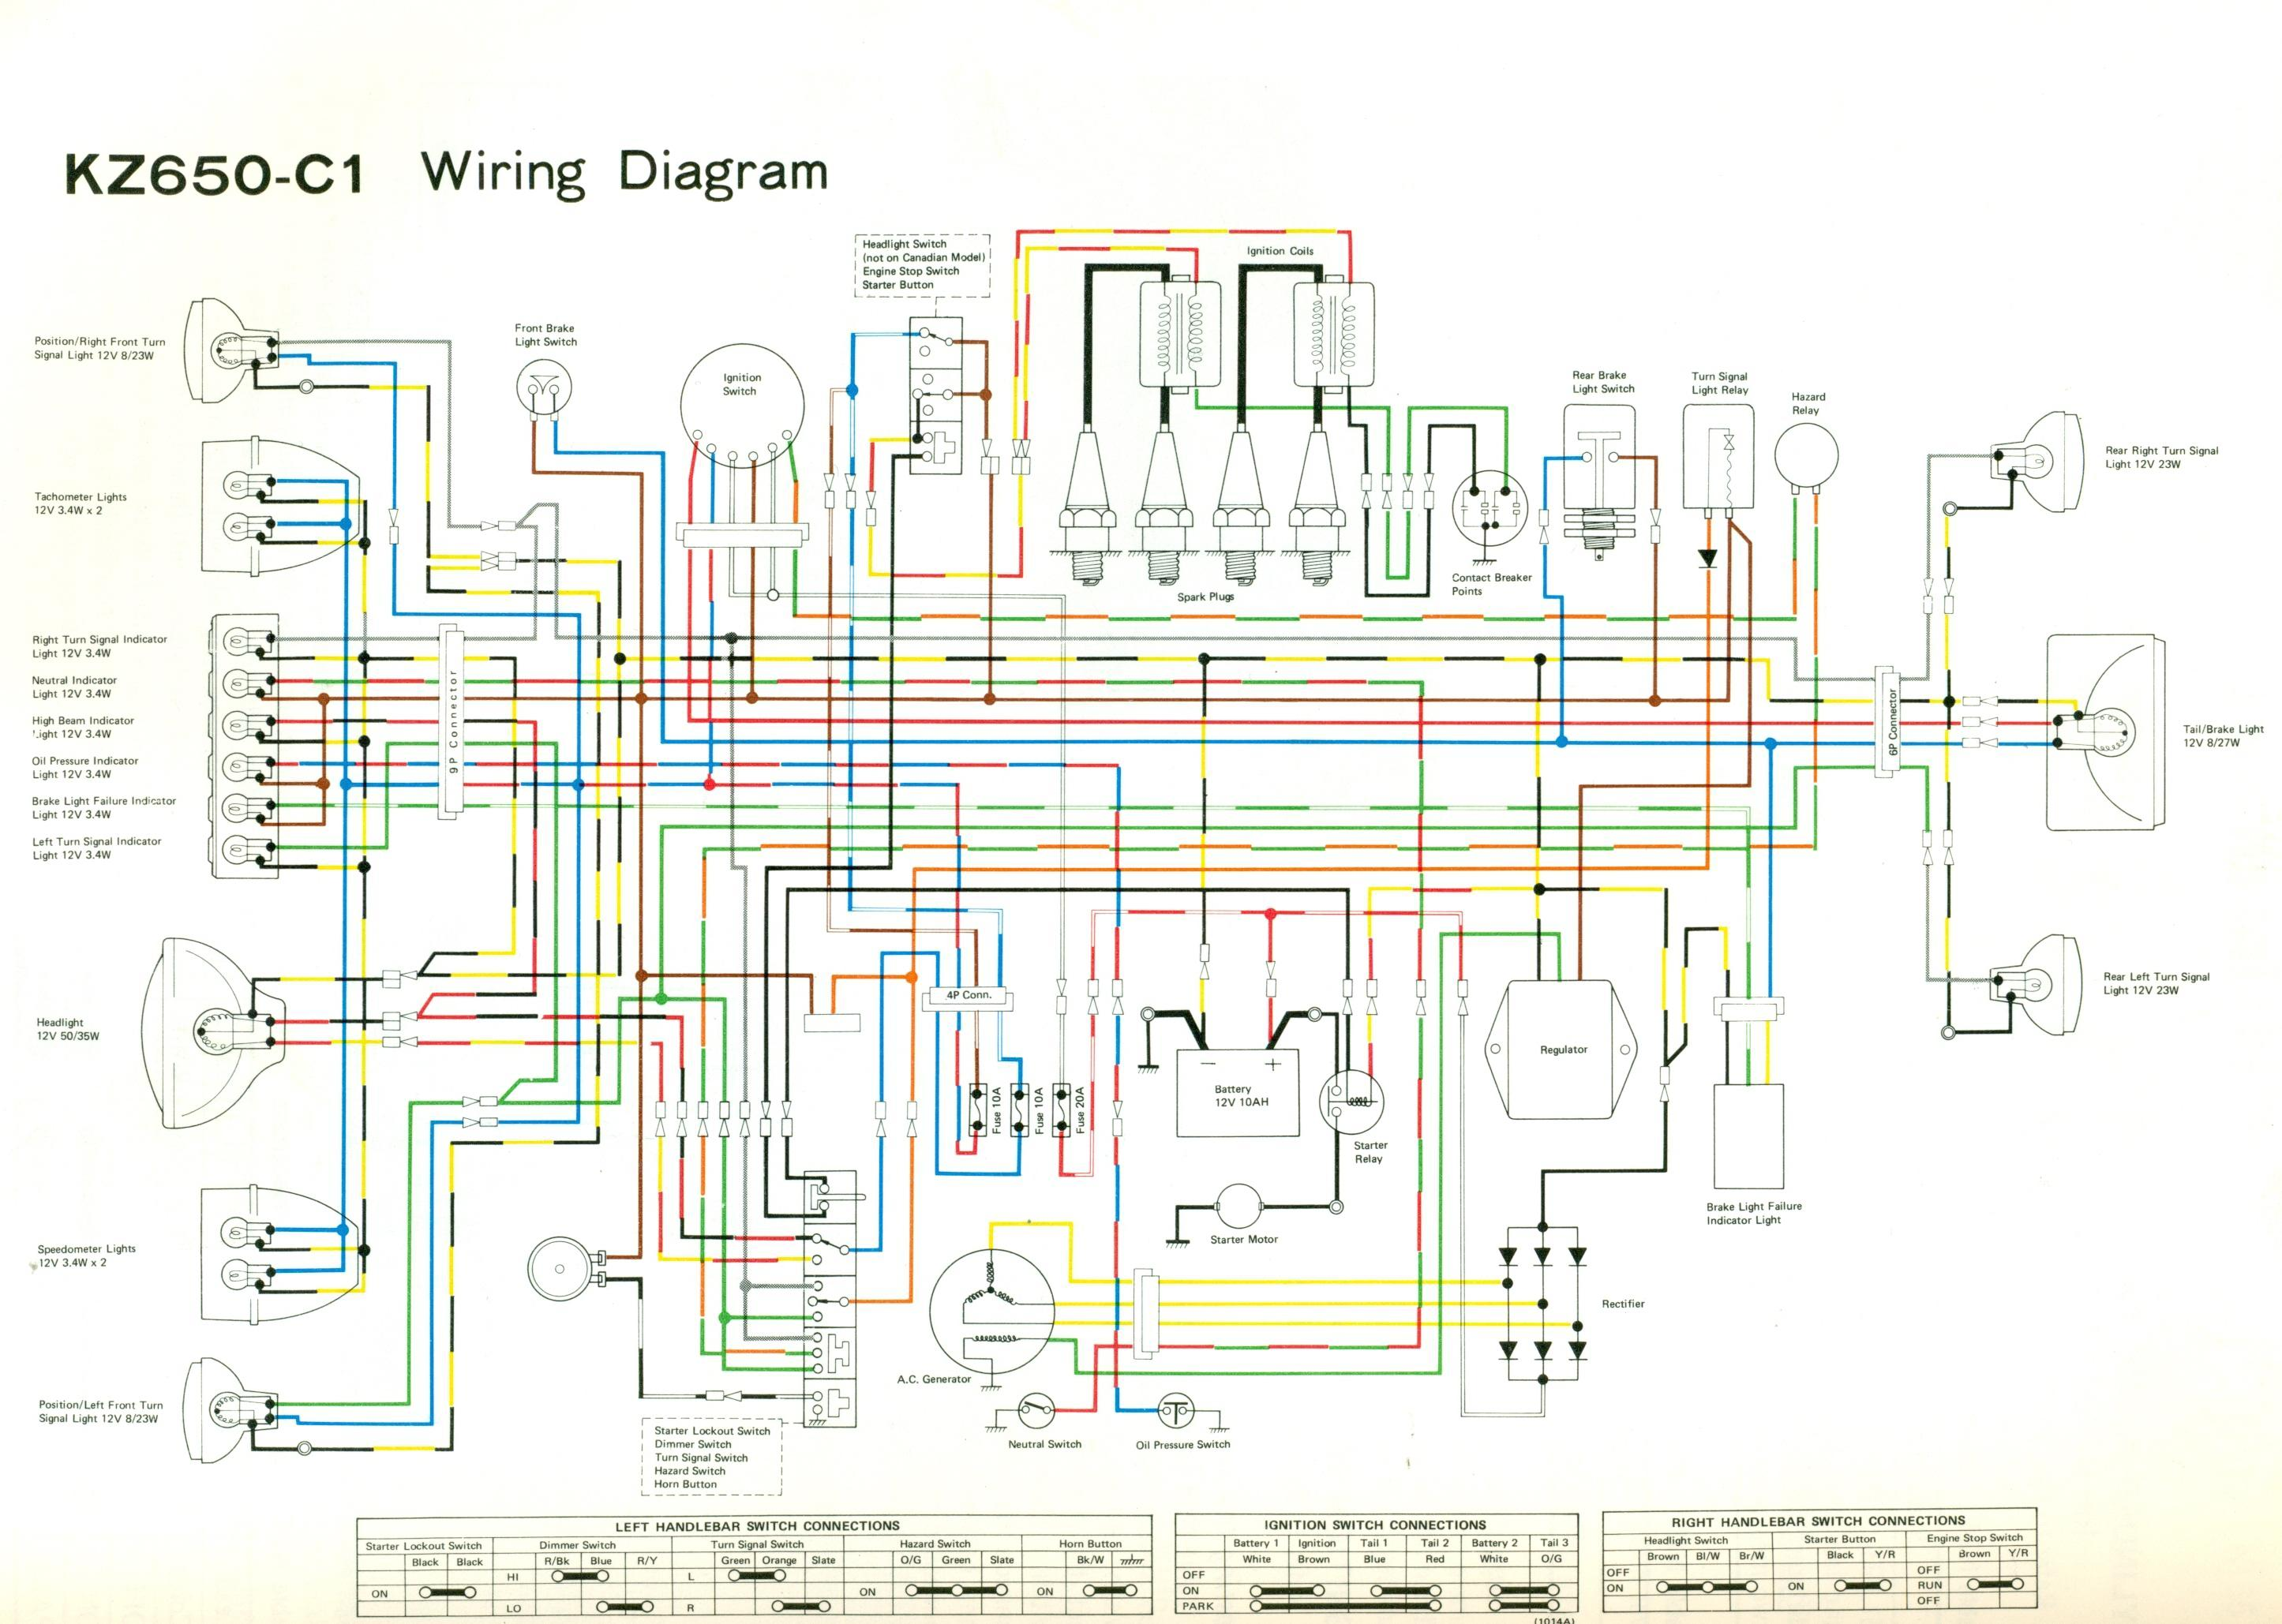 Wiring Diagrams Wire Schema Kz650 C